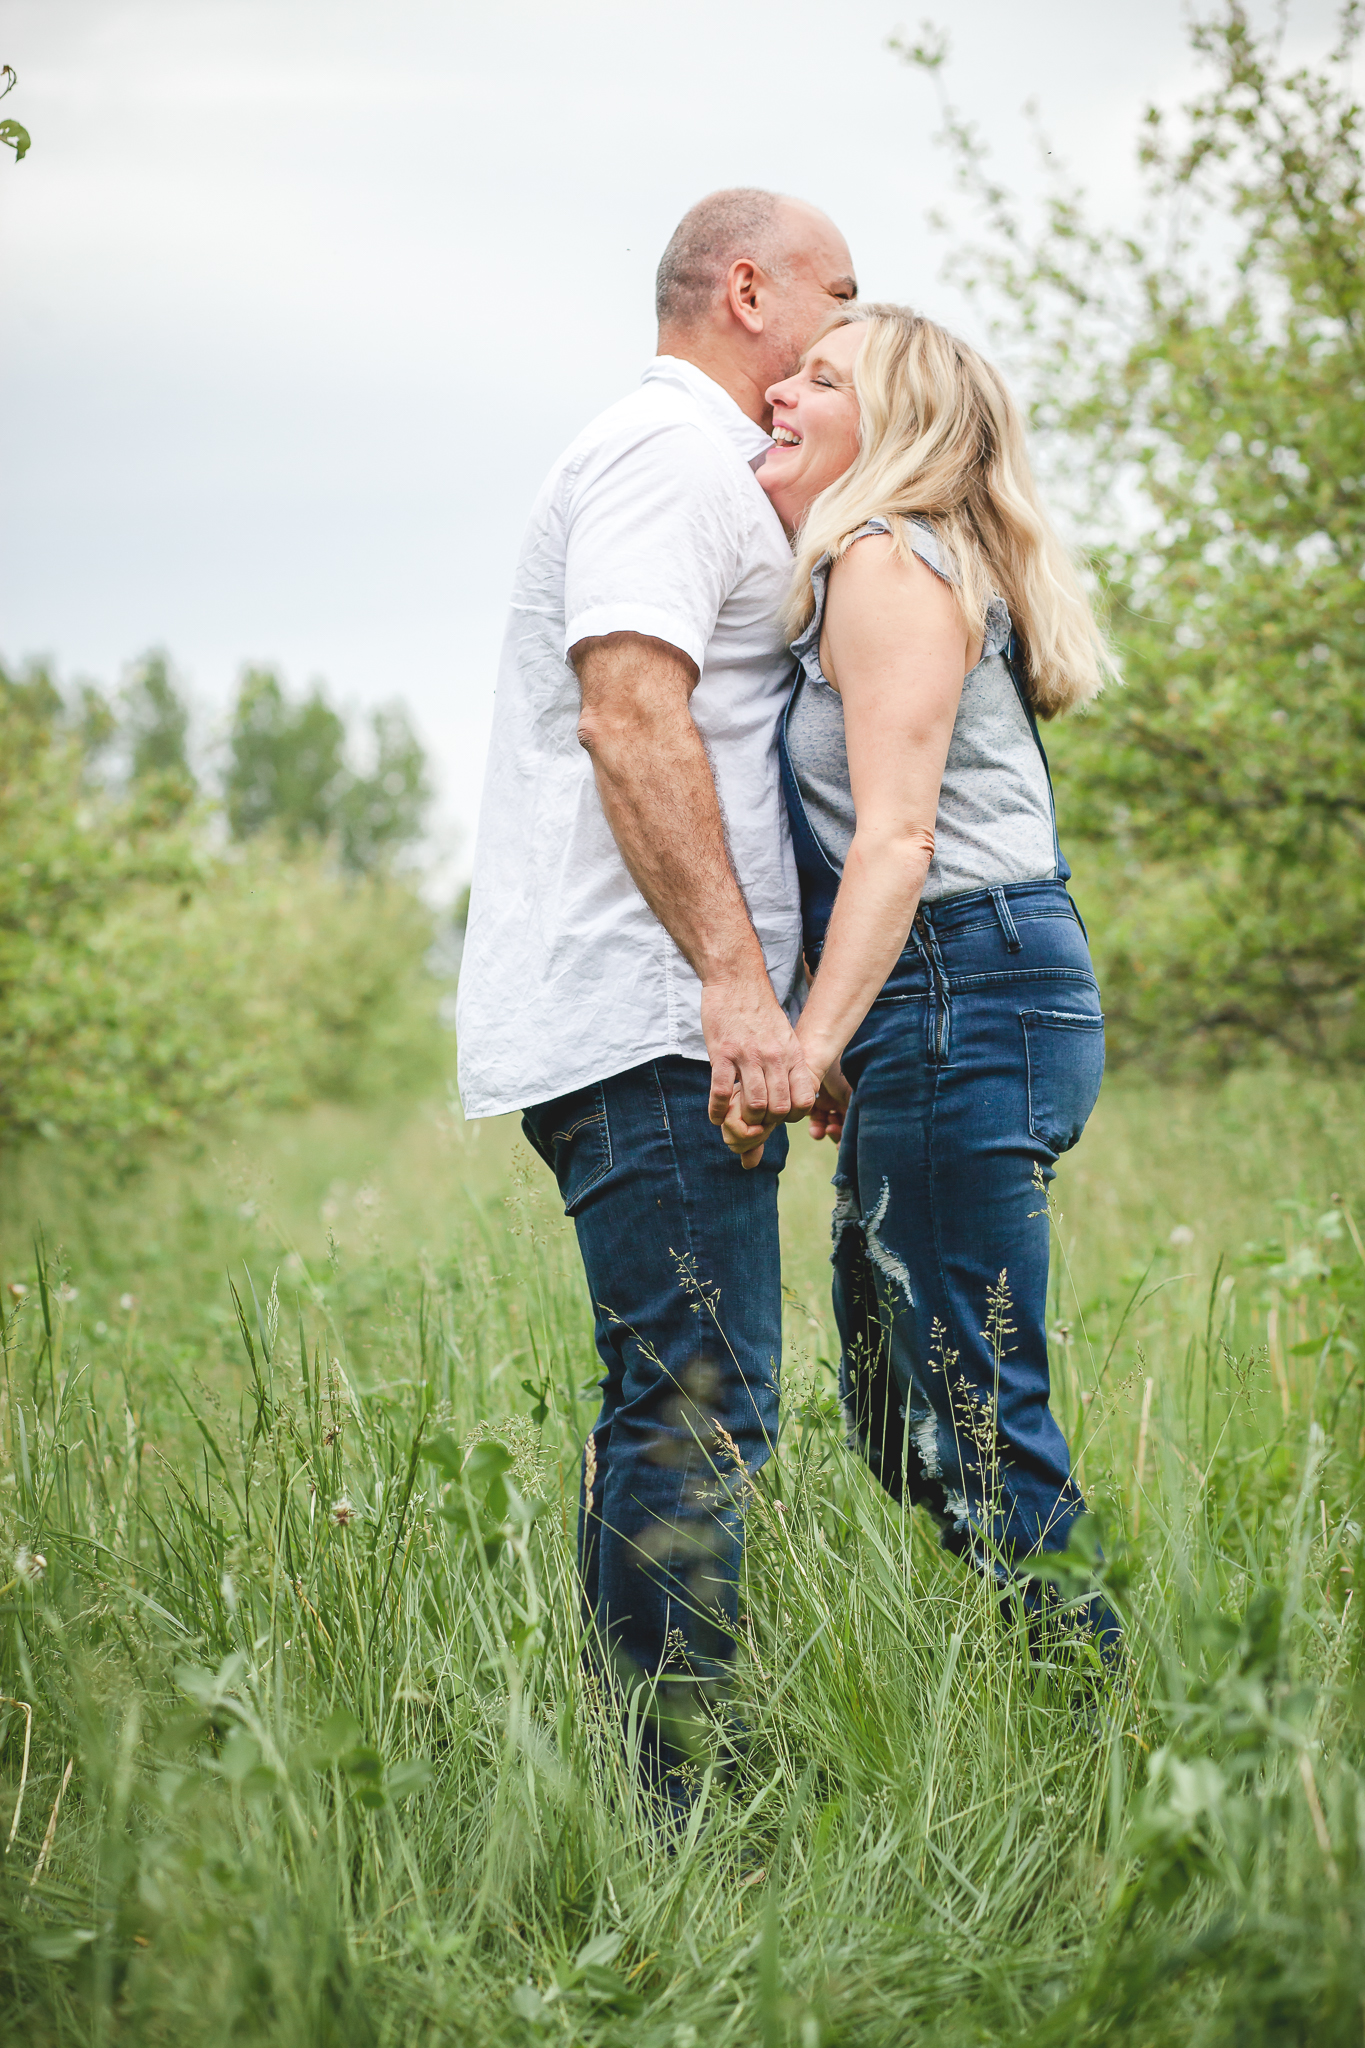 Family Photography- Lifestyle Family Photography- Candid Family Photography- Family Field- Family with Dog- Barrie Family Photographer- Apple Orchard Family Session- Smoke Bomb Photo (53 of 83).jpg